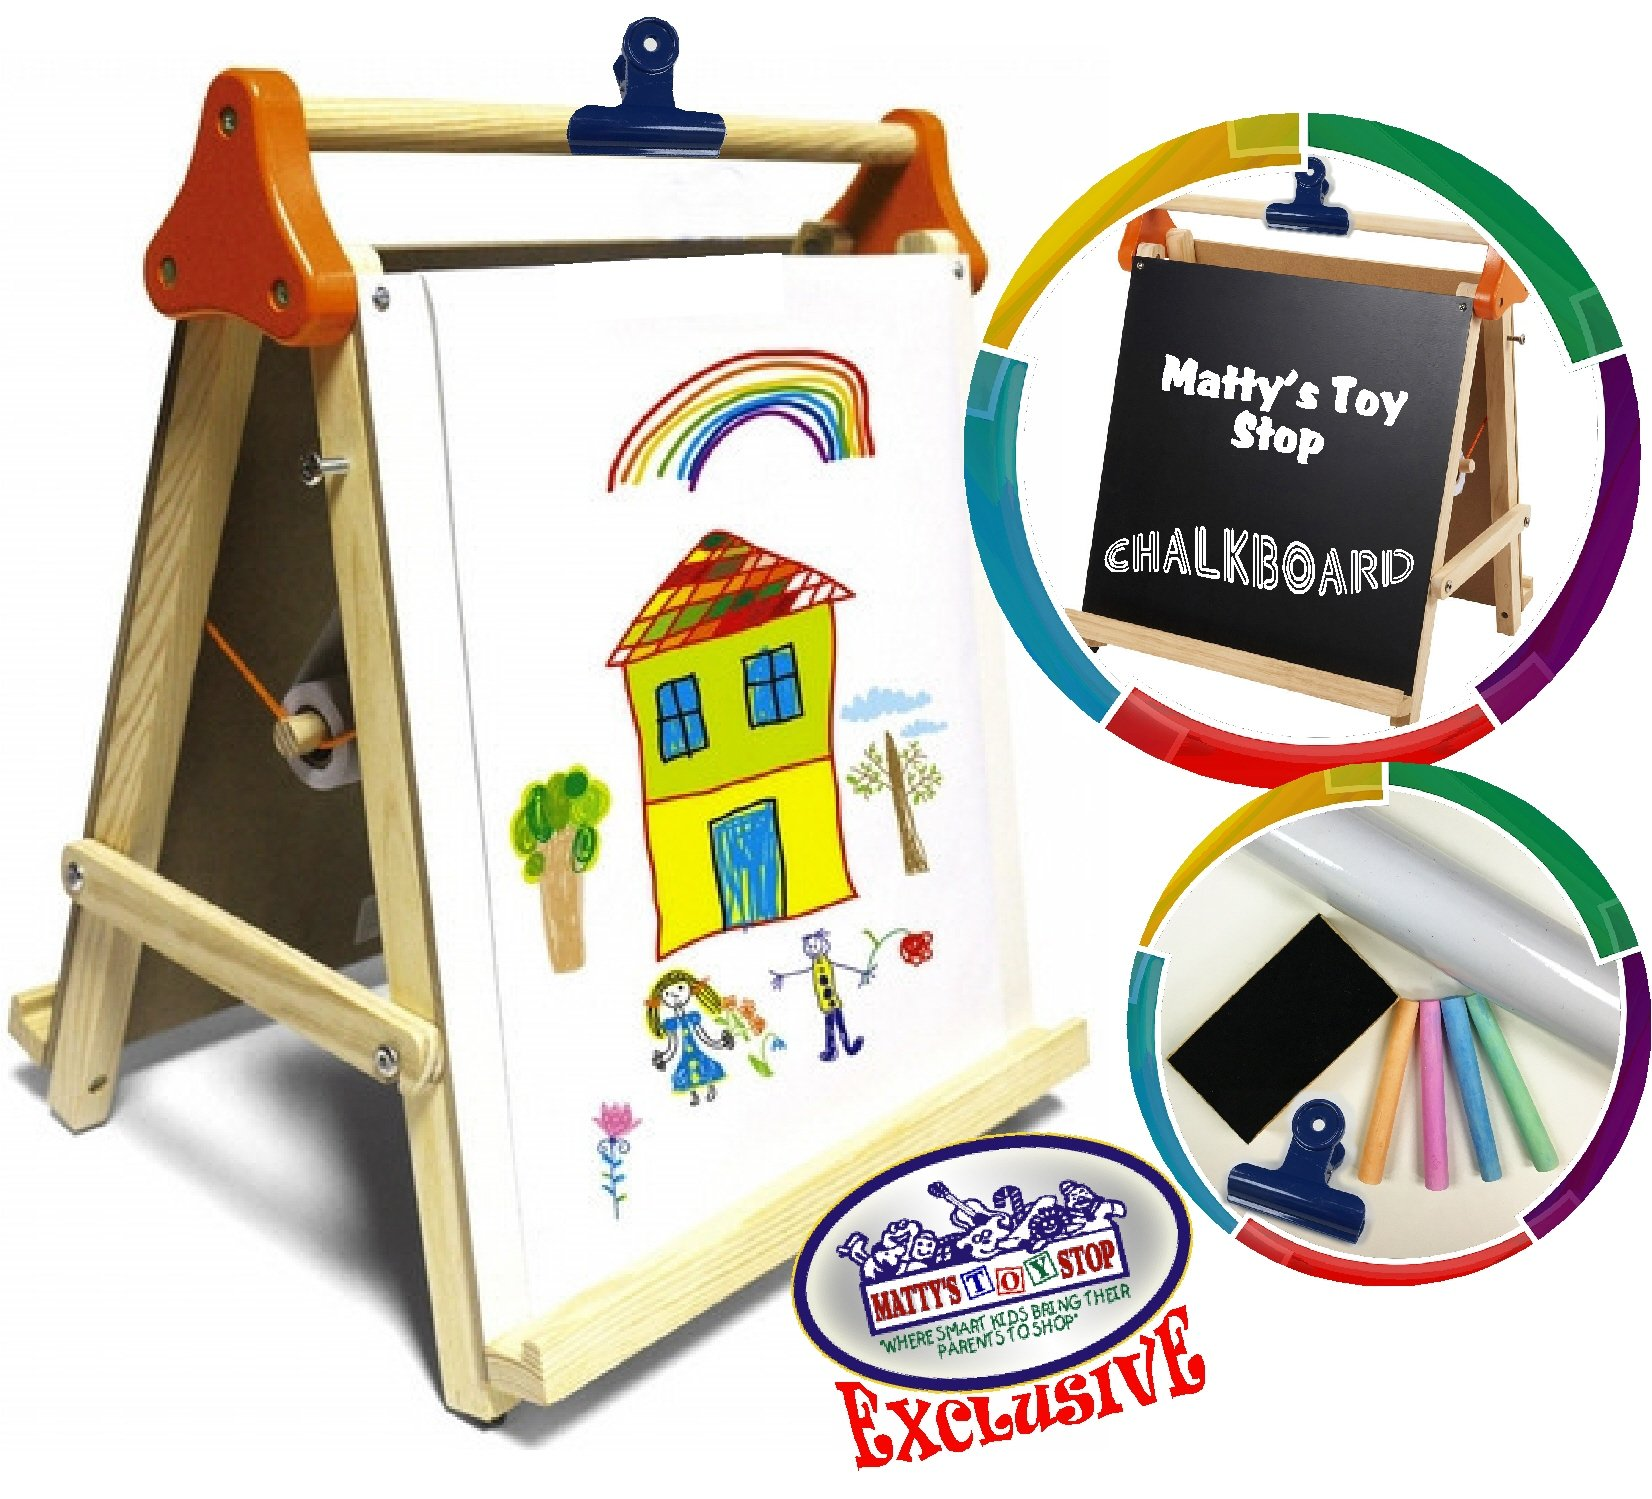 Deluxe 3 In 1 Wooden Tabletop Easel With Blackboard Dry Erase Paper Roll Accessories Matty S Toy Stop Exclusive